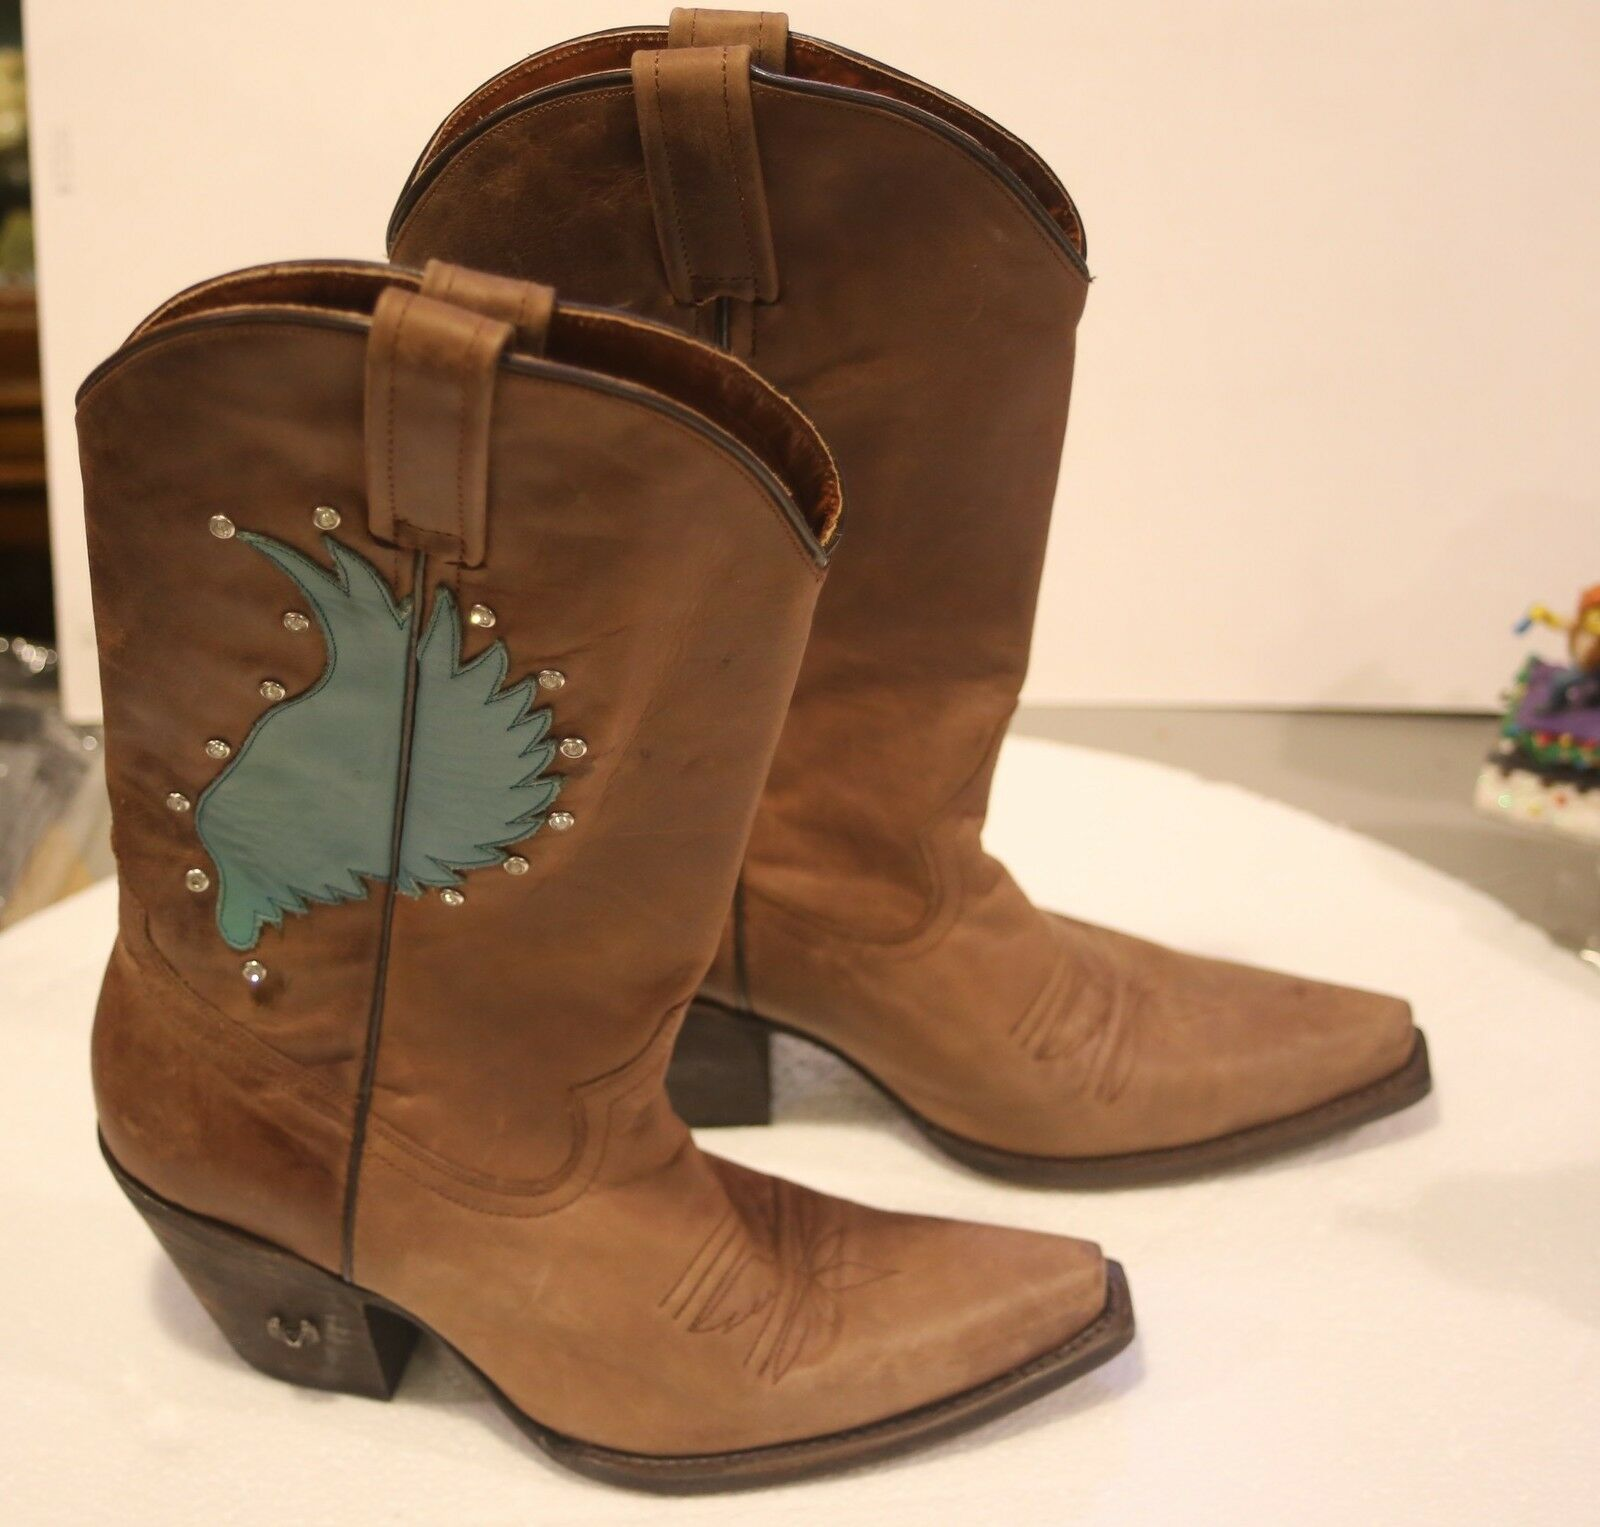 Eight second Angel boots size 7.5, nice, turquoise wings